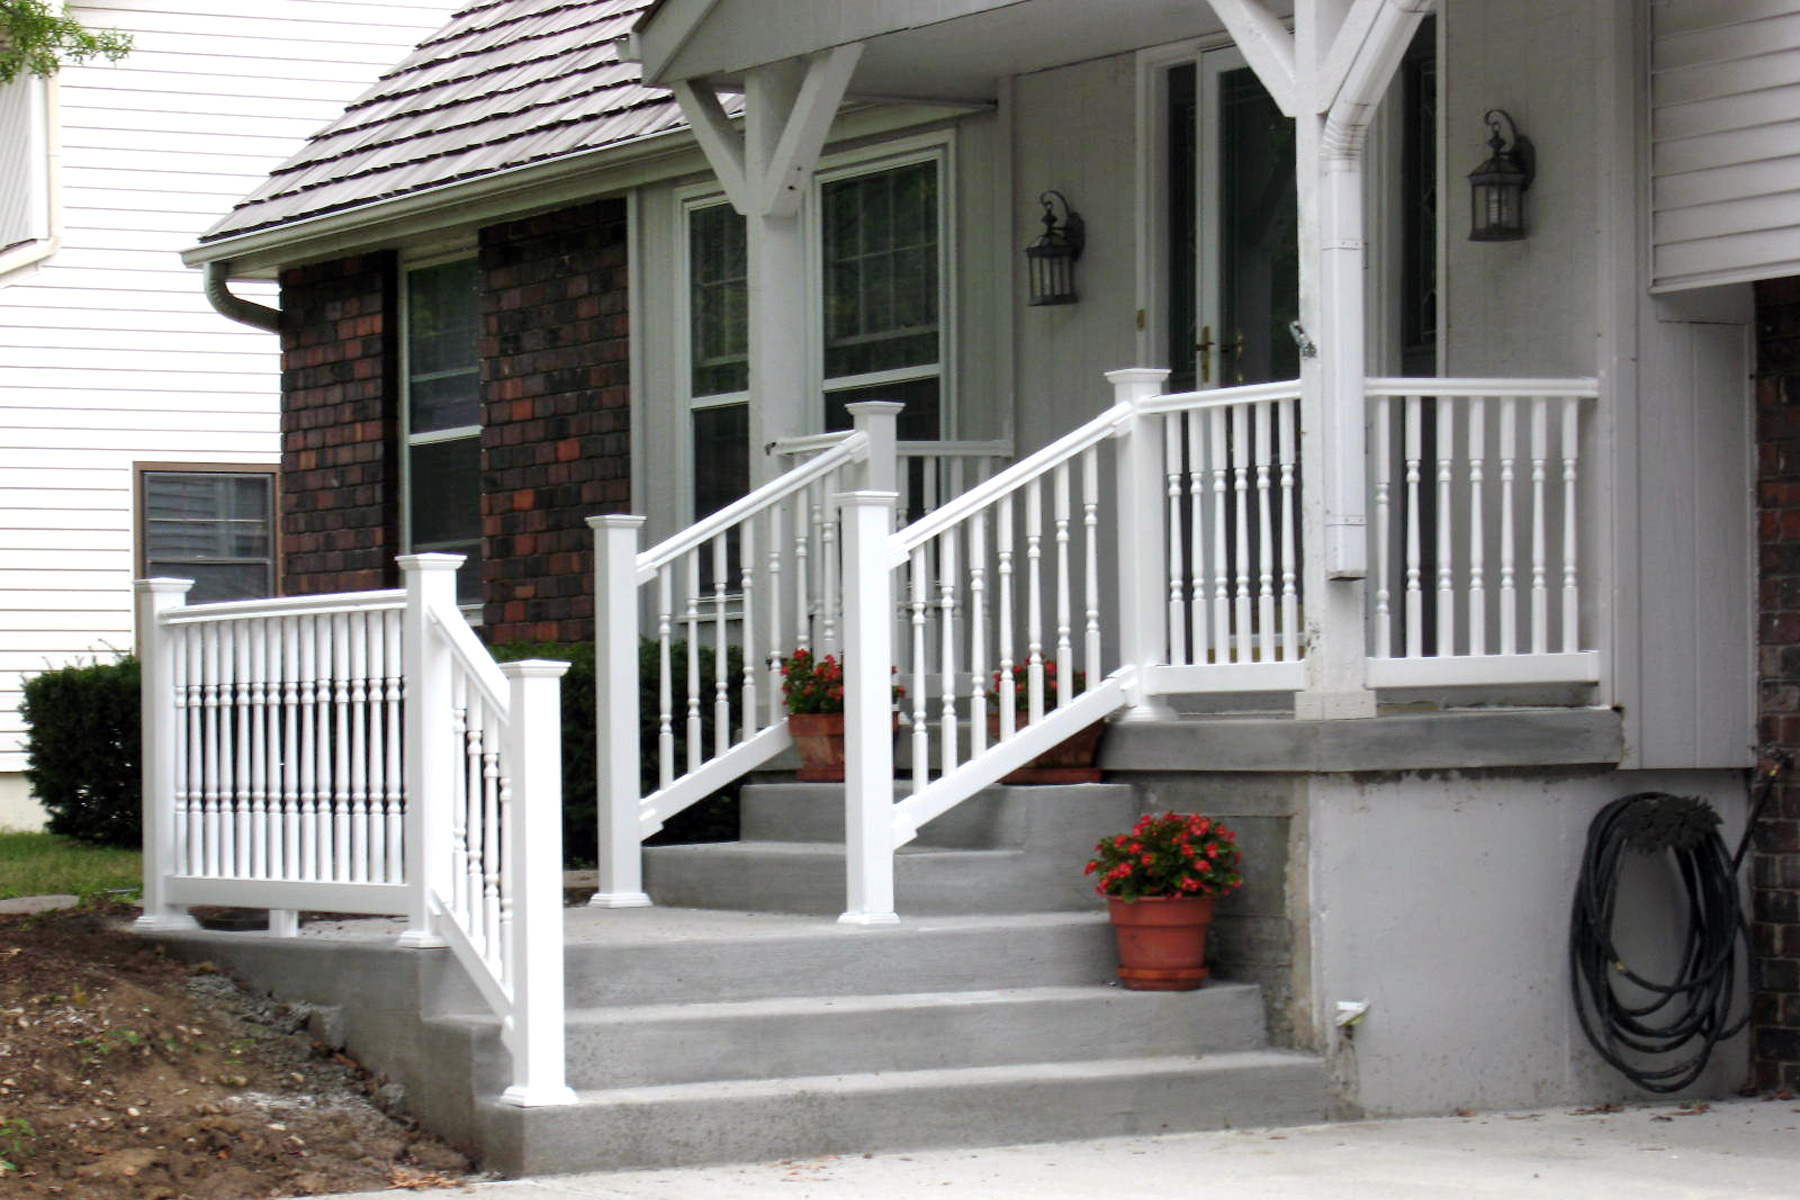 Handrail design services in Kansas City, Dave Dinkel, RoyalCraftsmen.com, Repair and Installation